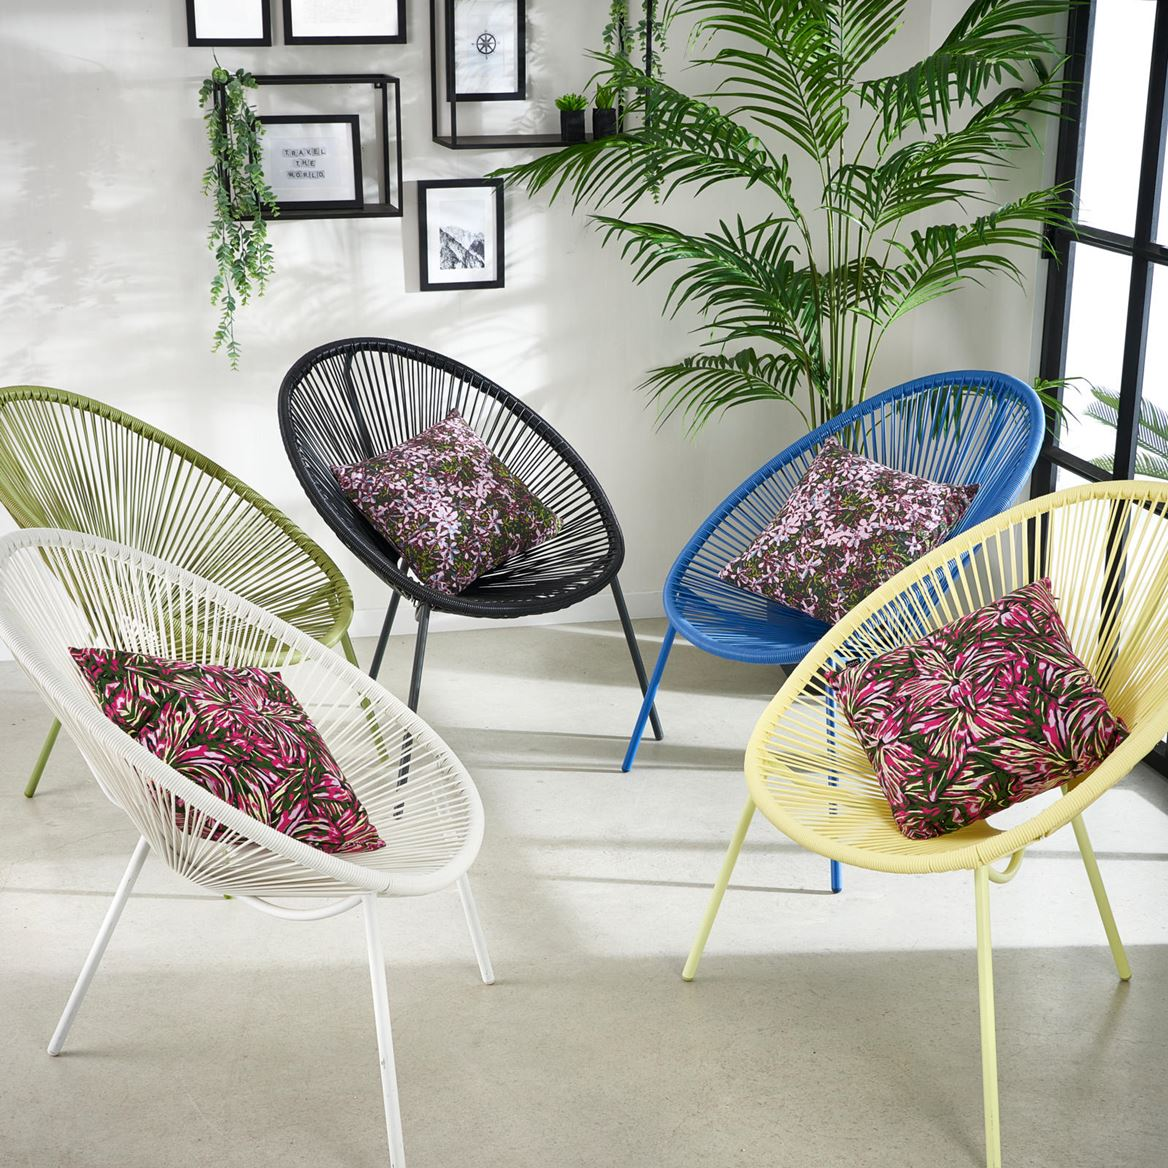 acapulco chaise produits feelgood pour la maison et le jardin chez casa. Black Bedroom Furniture Sets. Home Design Ideas